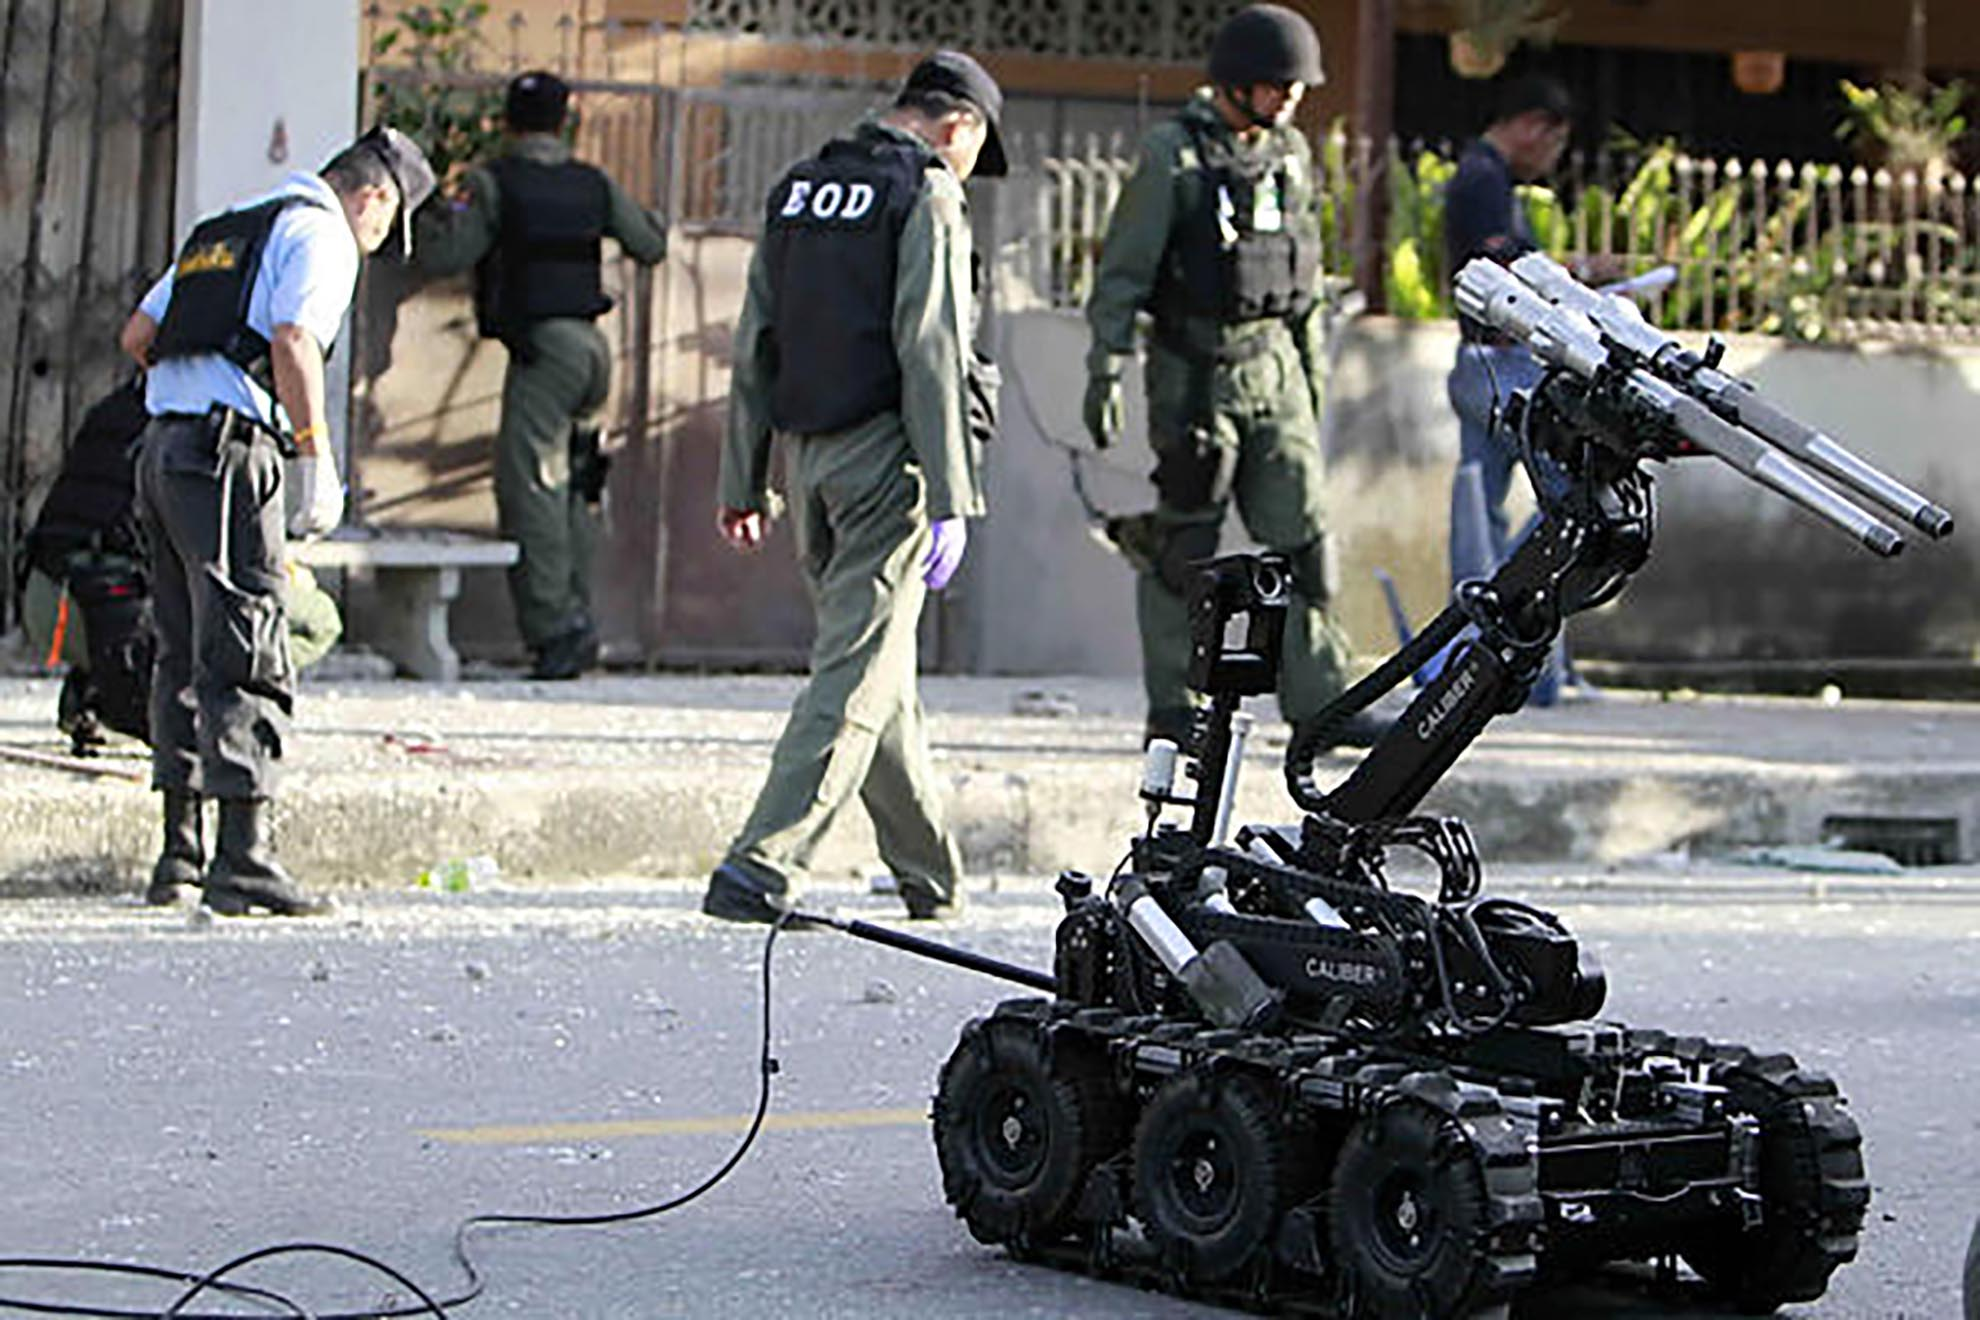 mk3-caliber-eod-robot-on-thether